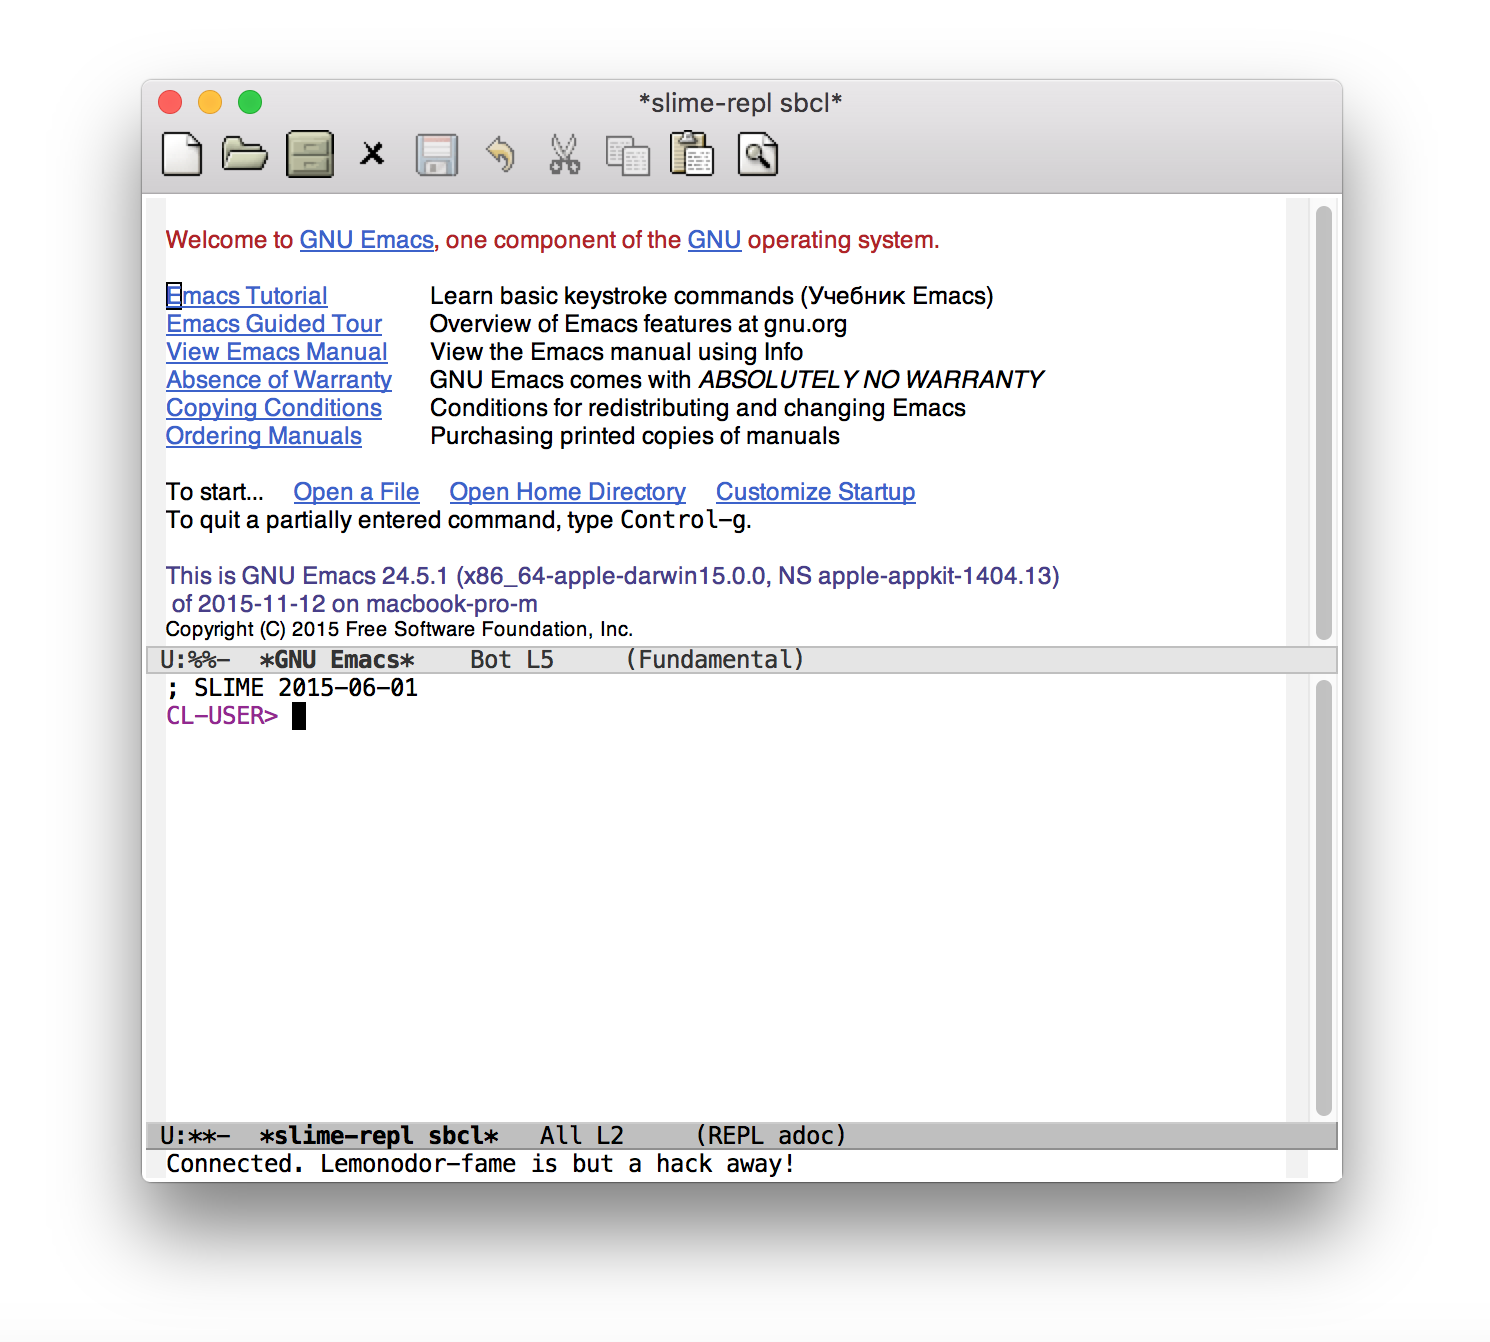 emacs M-x slime-connect 127.0.0.1